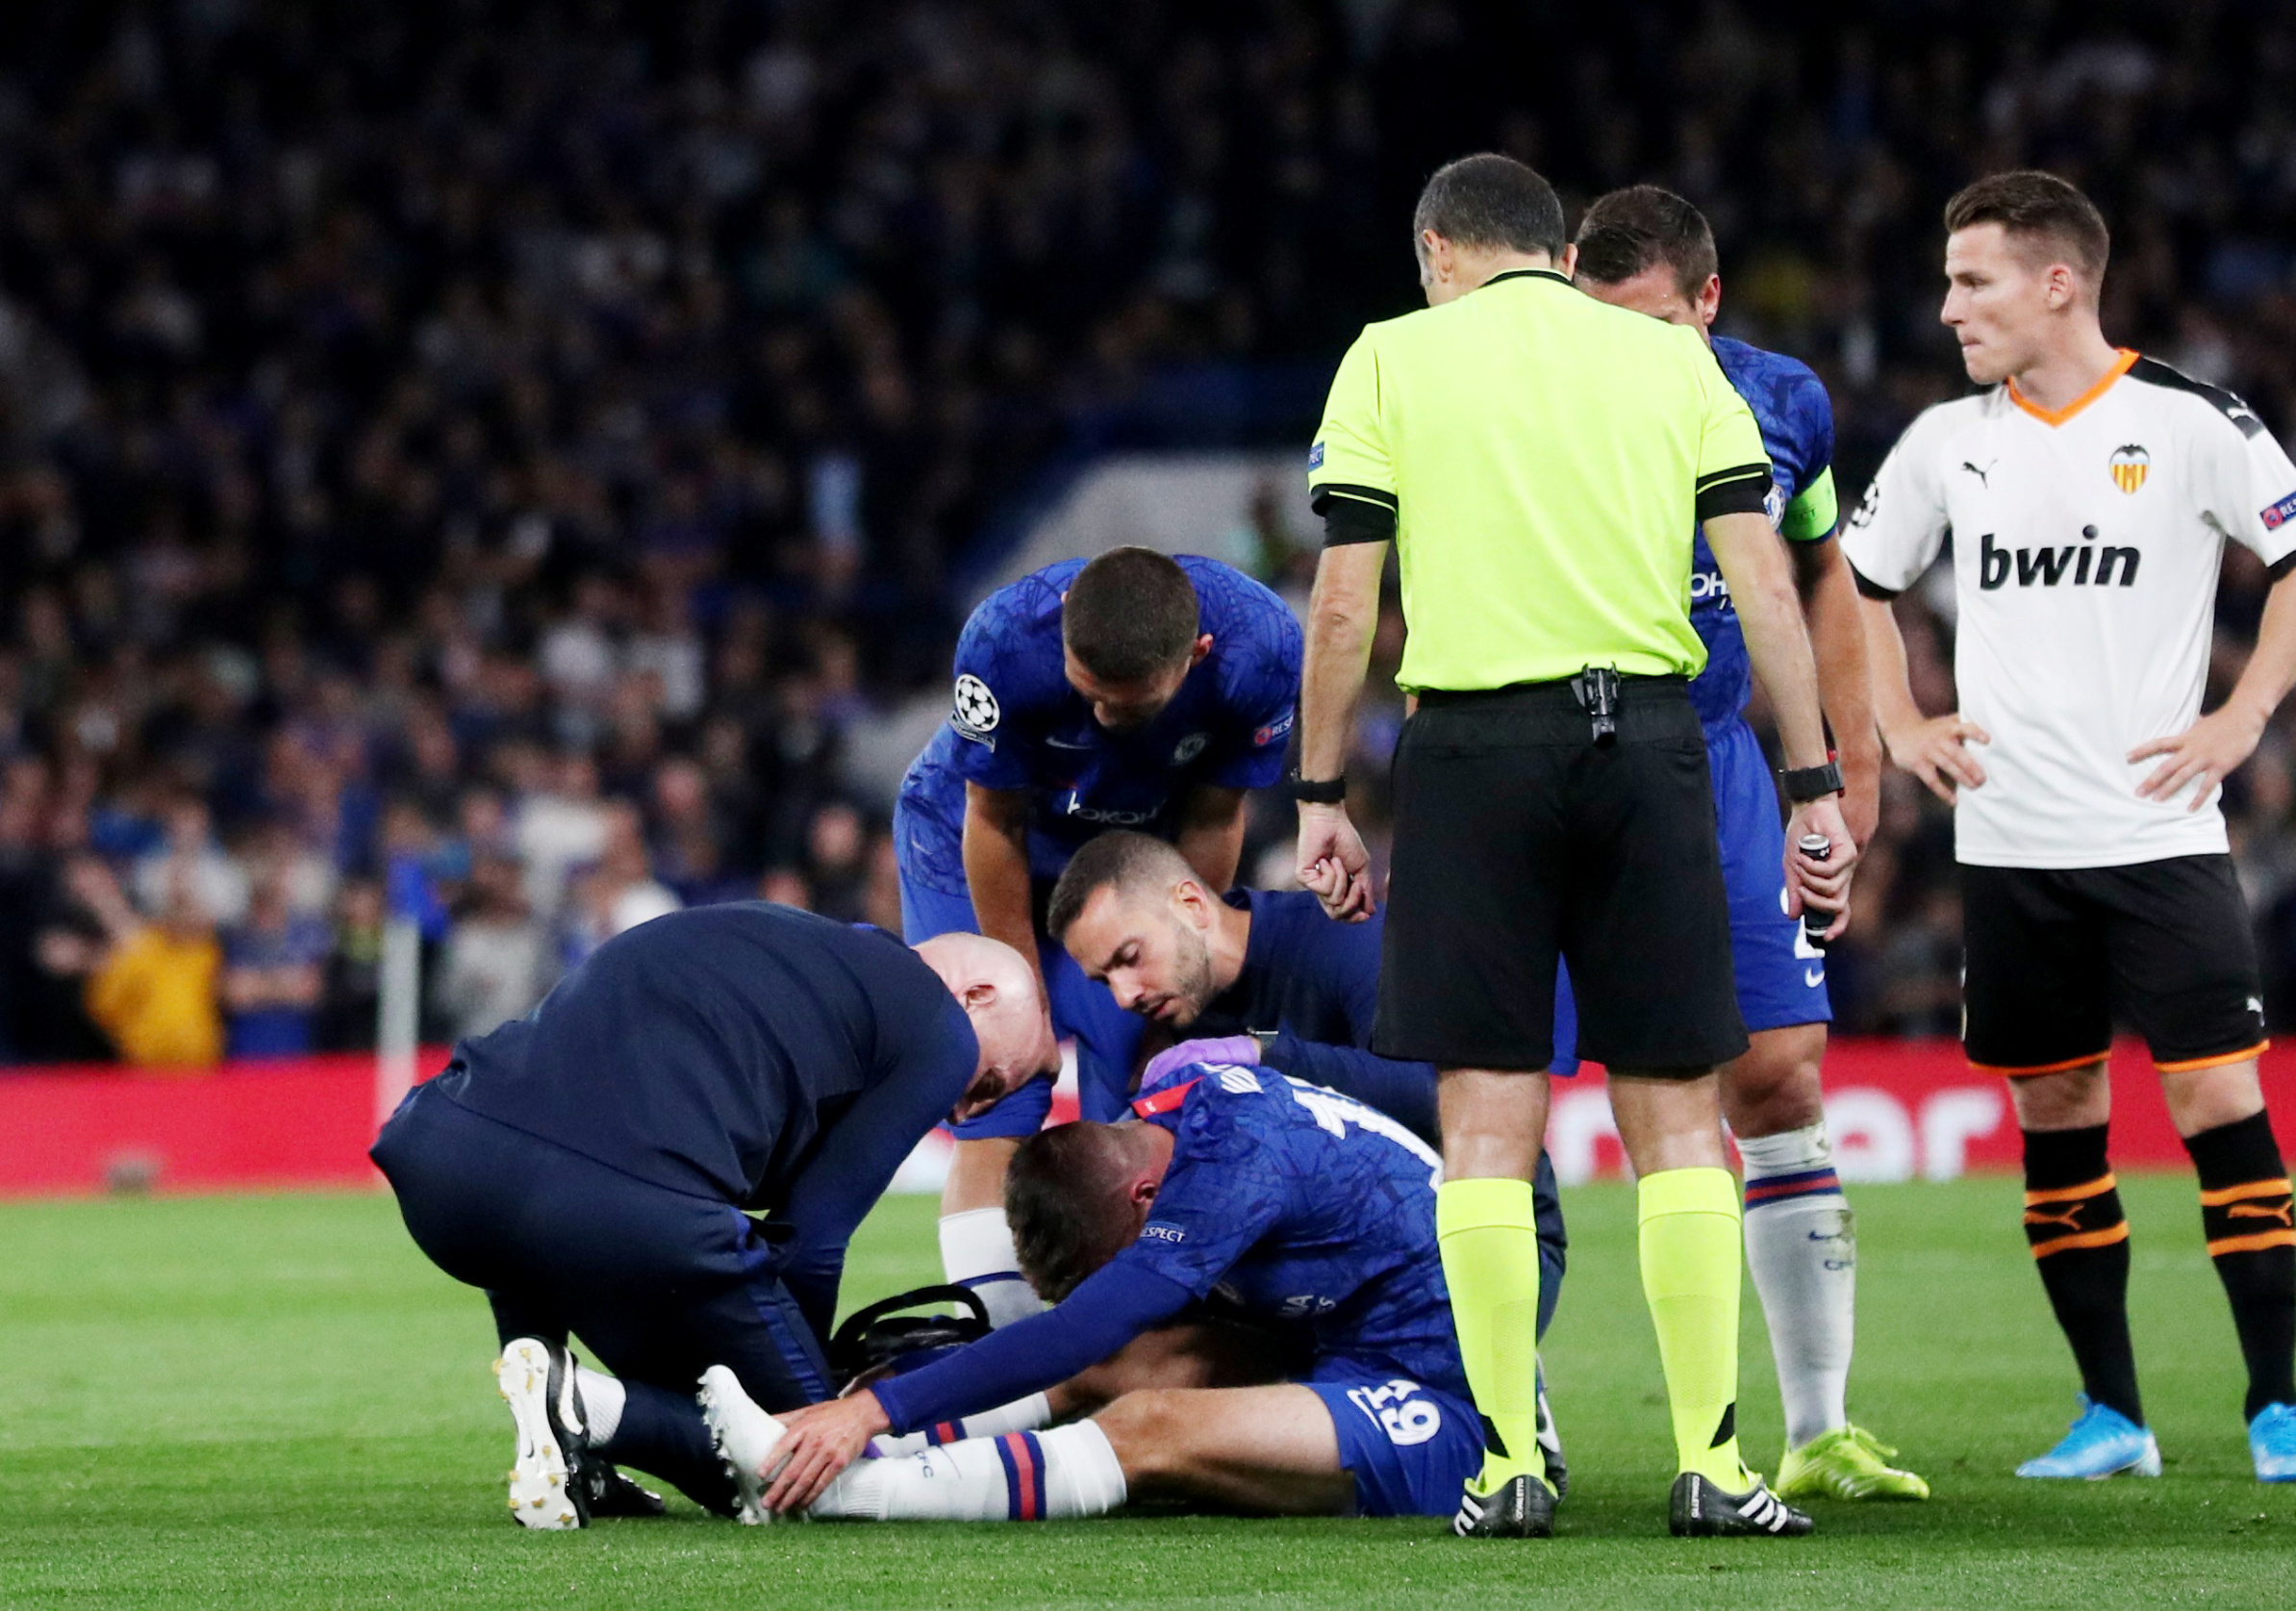 Soccer Football - Champions League - Group H - Chelsea v Valencia - Stamford Bridge, London, Britain - September 17, 2019  Chelsea's Mason Mount receives treatment from physios after being fouled  REUTERS/Hannah McKay